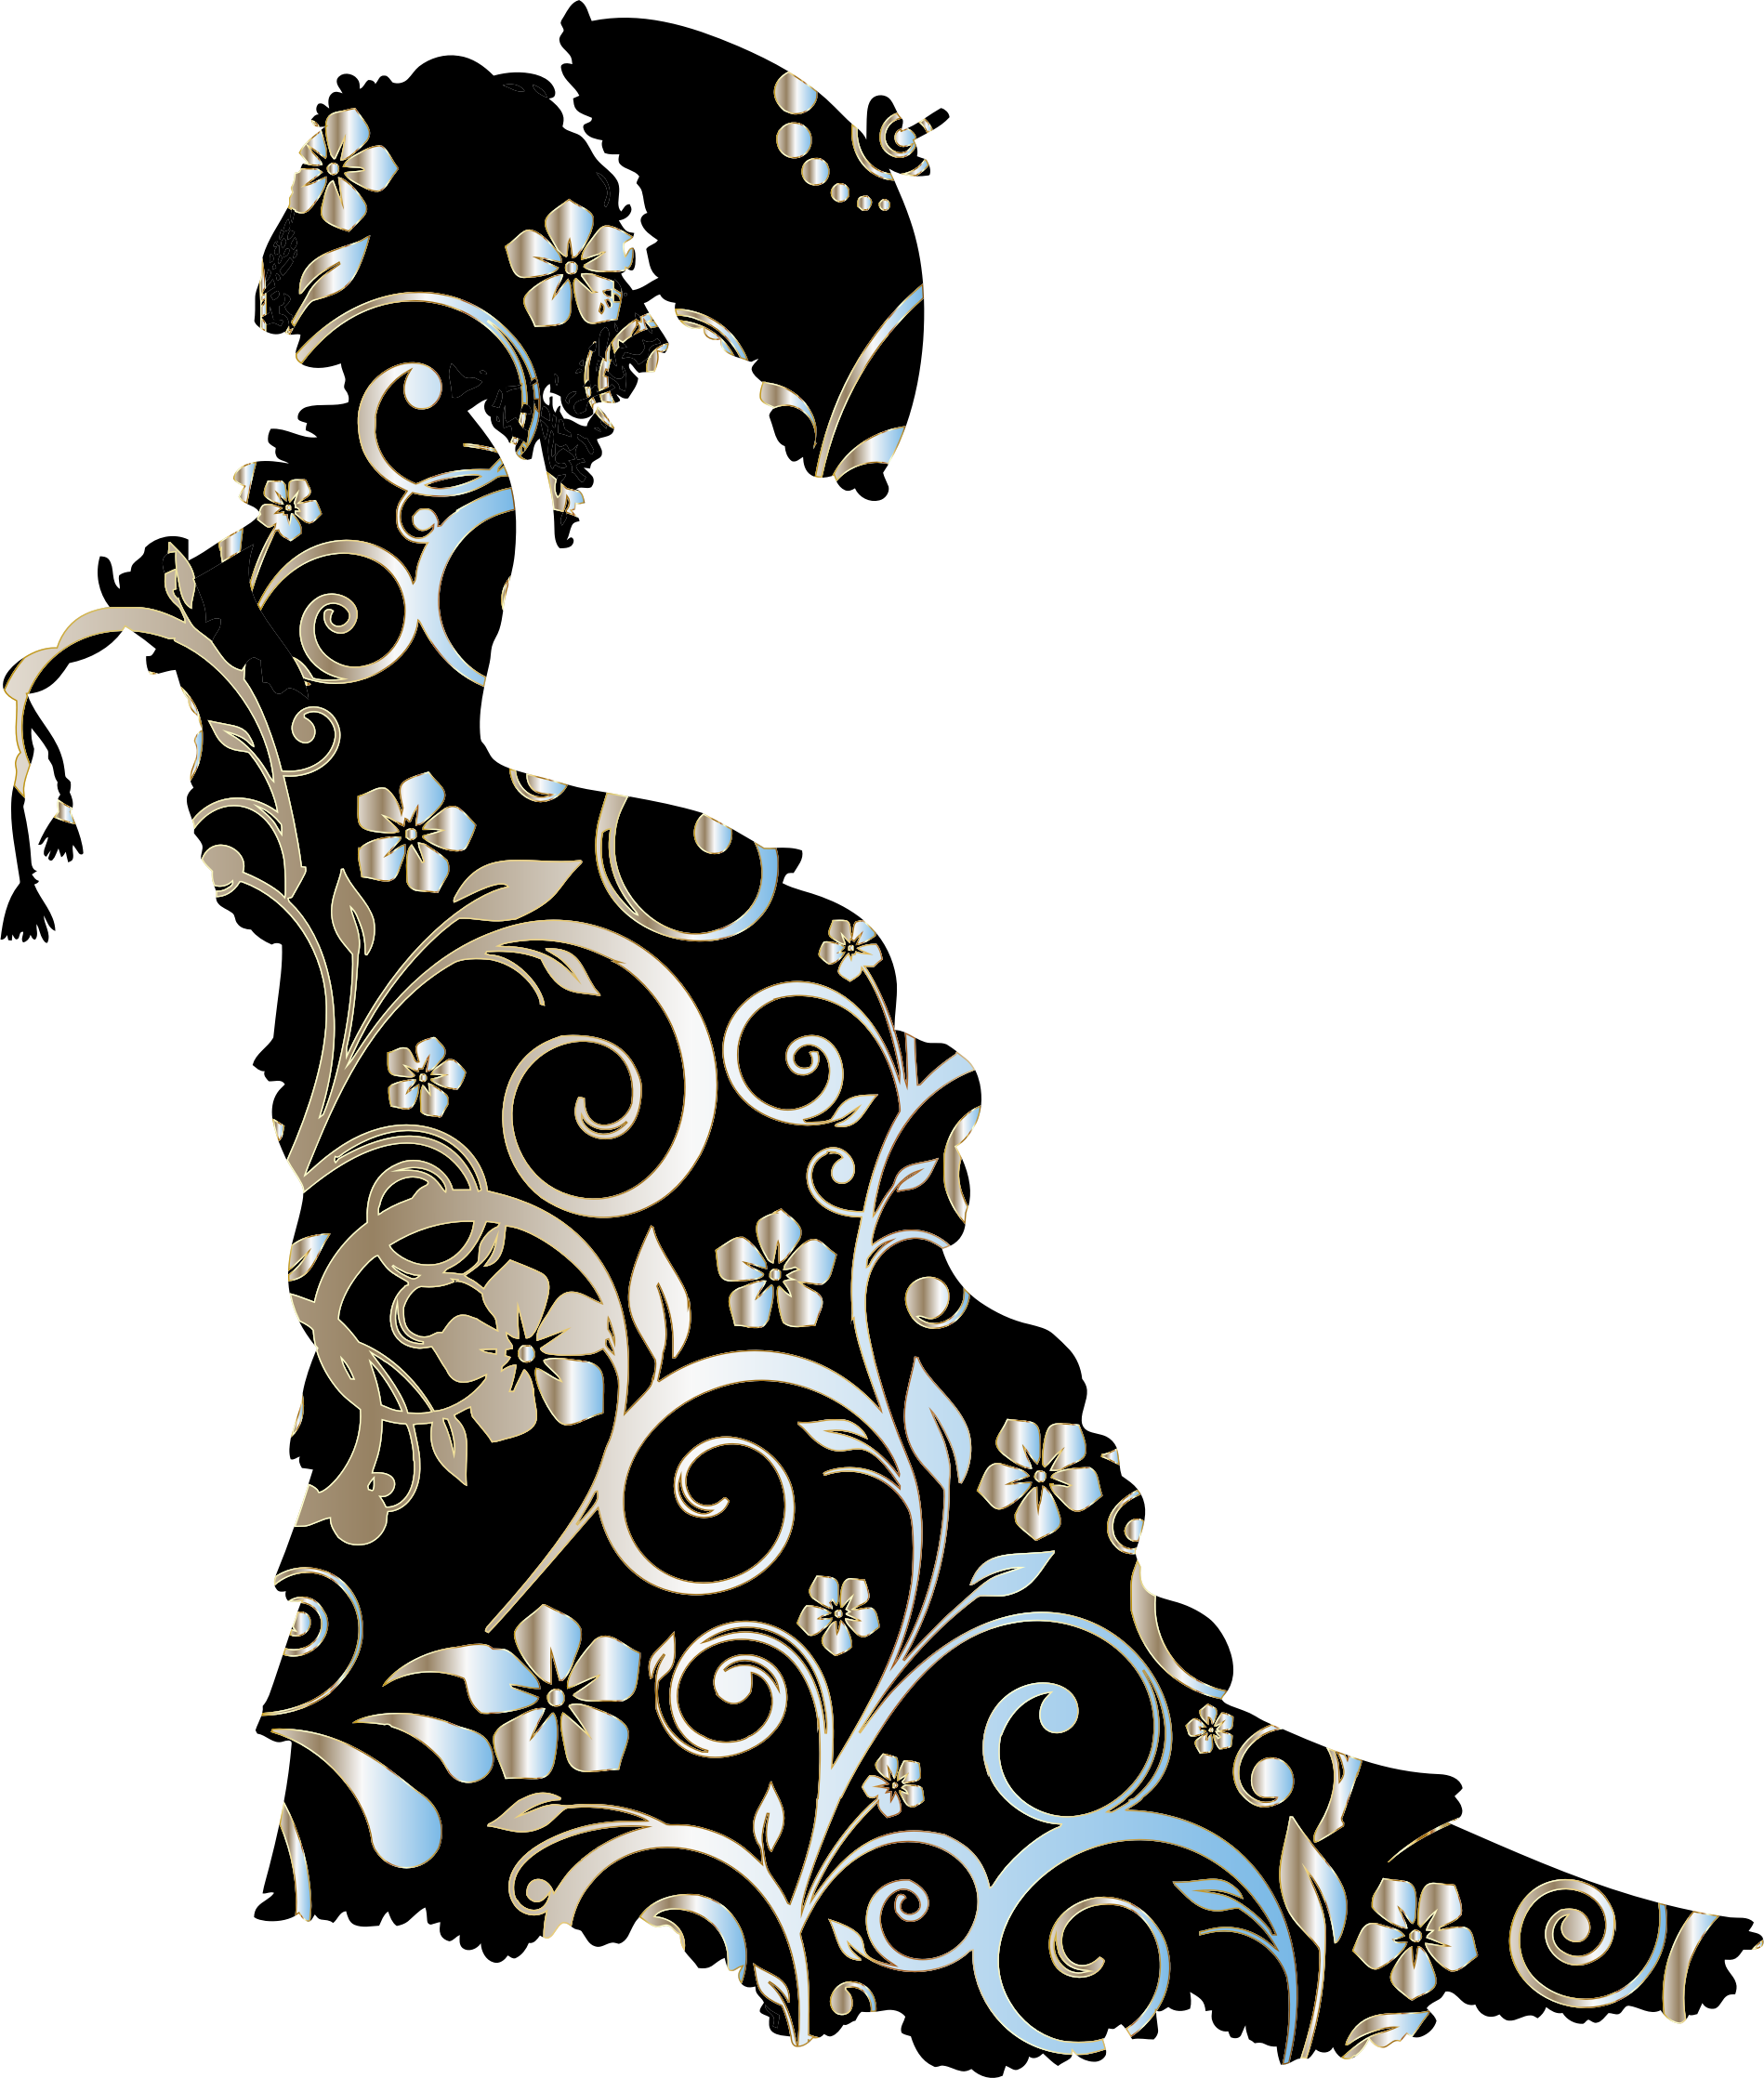 Maid clipart vintage. Silhouette at getdrawings com